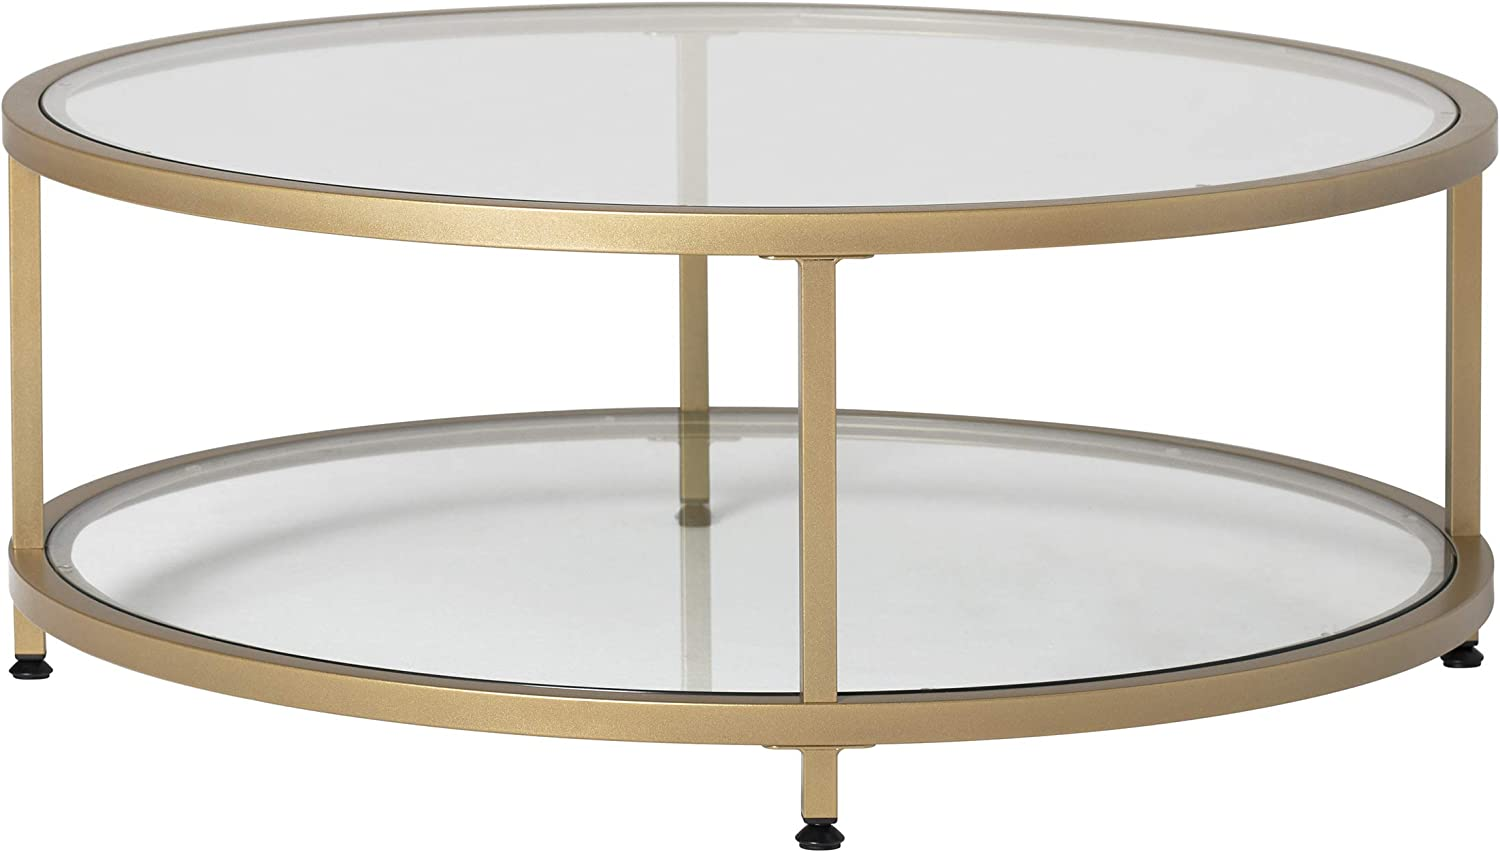 "Studio Designs Home Camber 2-Tier Modern 38"" Round Coffee Table in Gold/Clear Glass"